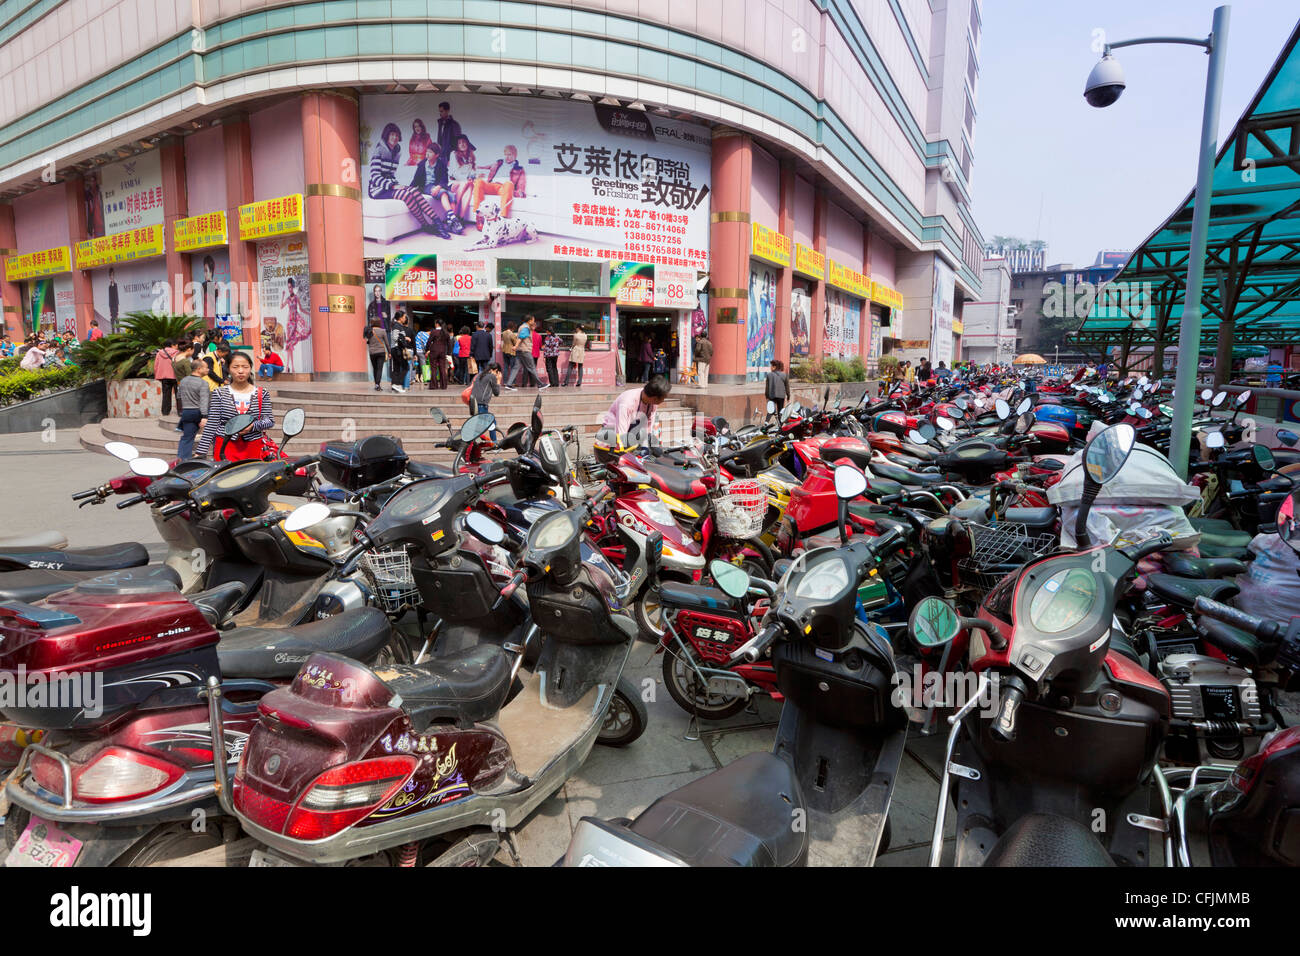 City centre scooters, Chengdu, Sichuan province, China, Asia - Stock Image